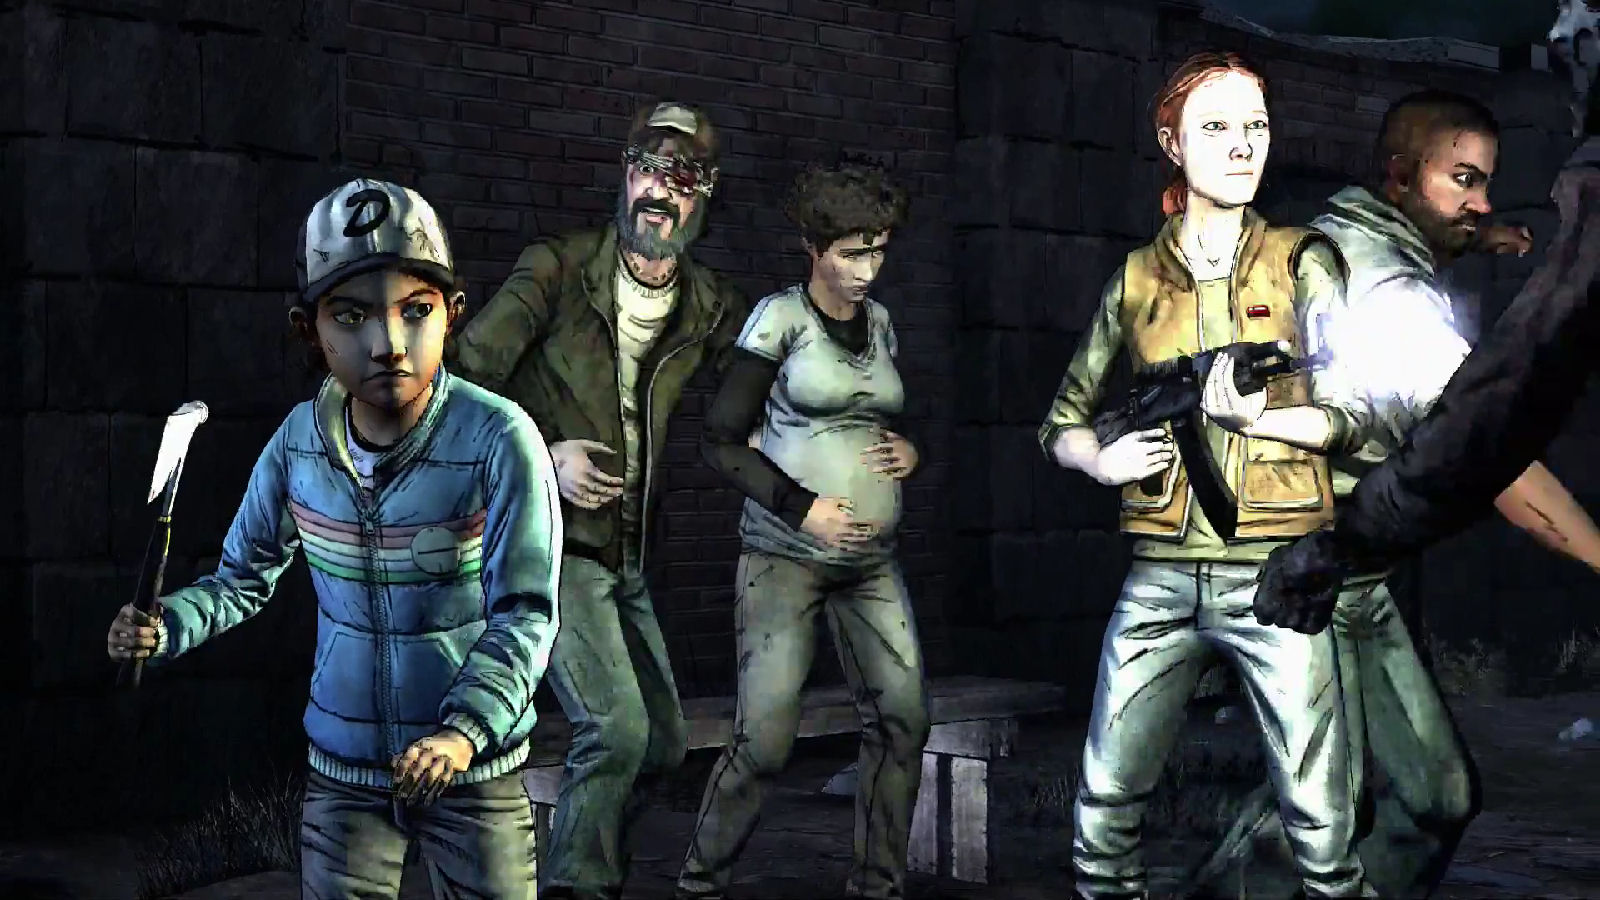 the-walking-dead-game-season-2-episode-4-zombie-hoard-attack-screenshot